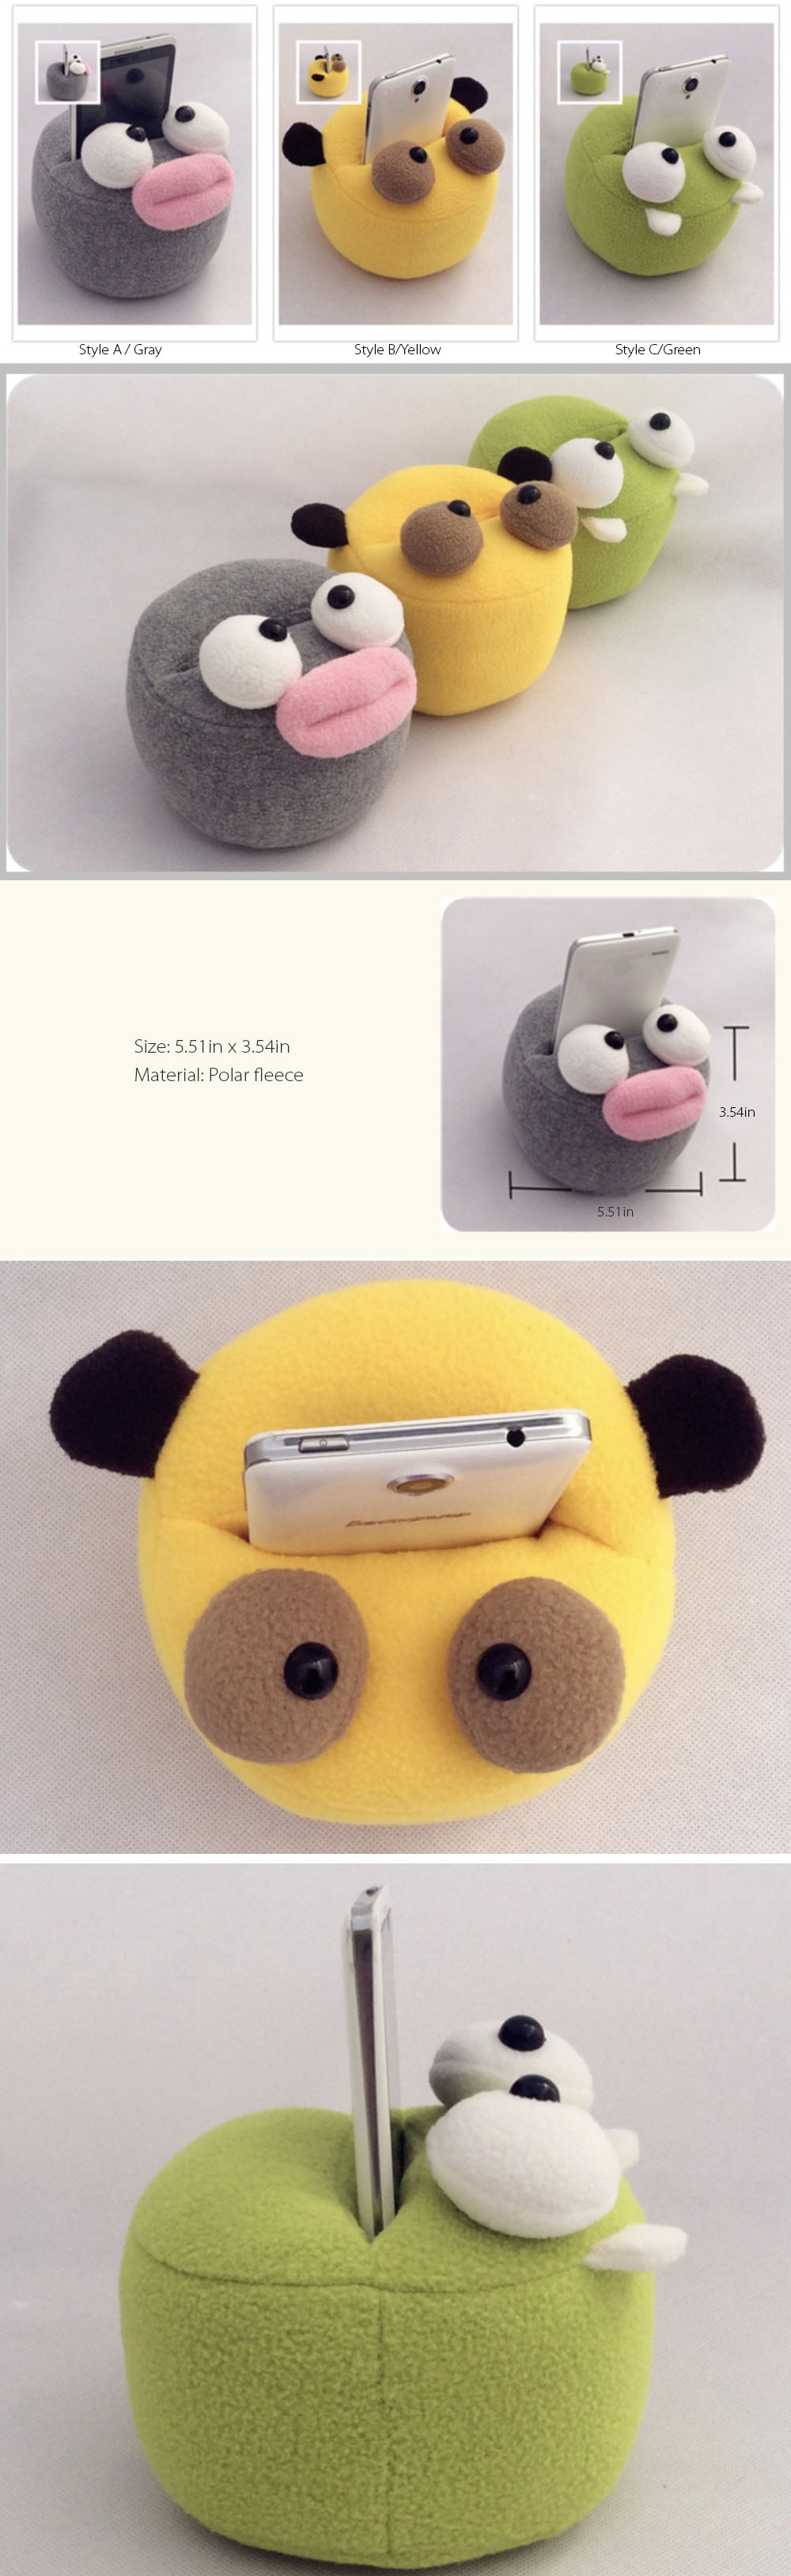 Animal Phone Stand Cute Gadget